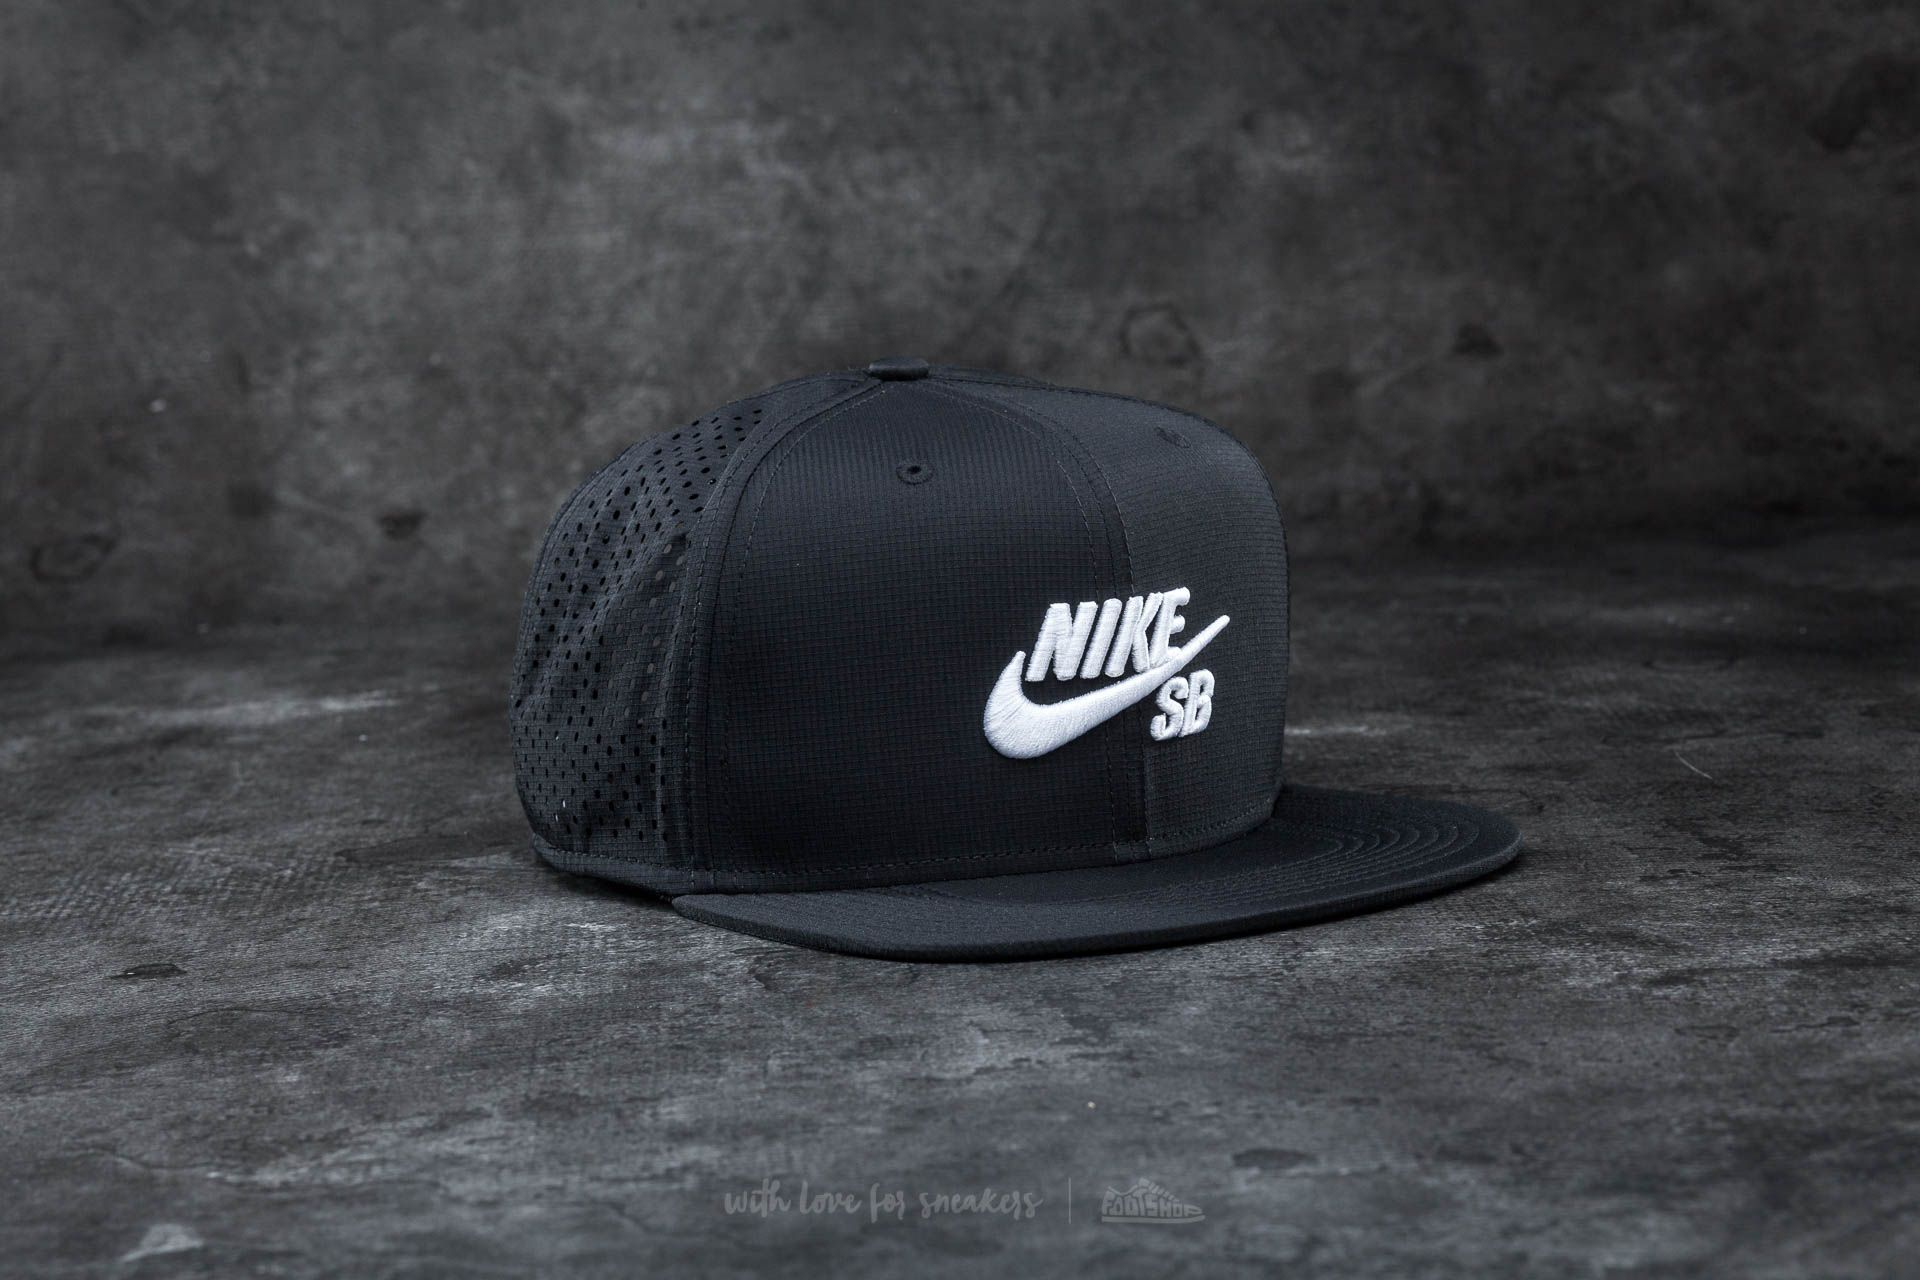 new product 6d889 52cfe ... switzerland nike sb performance trucker hat black white 1c96d 228f7 ...